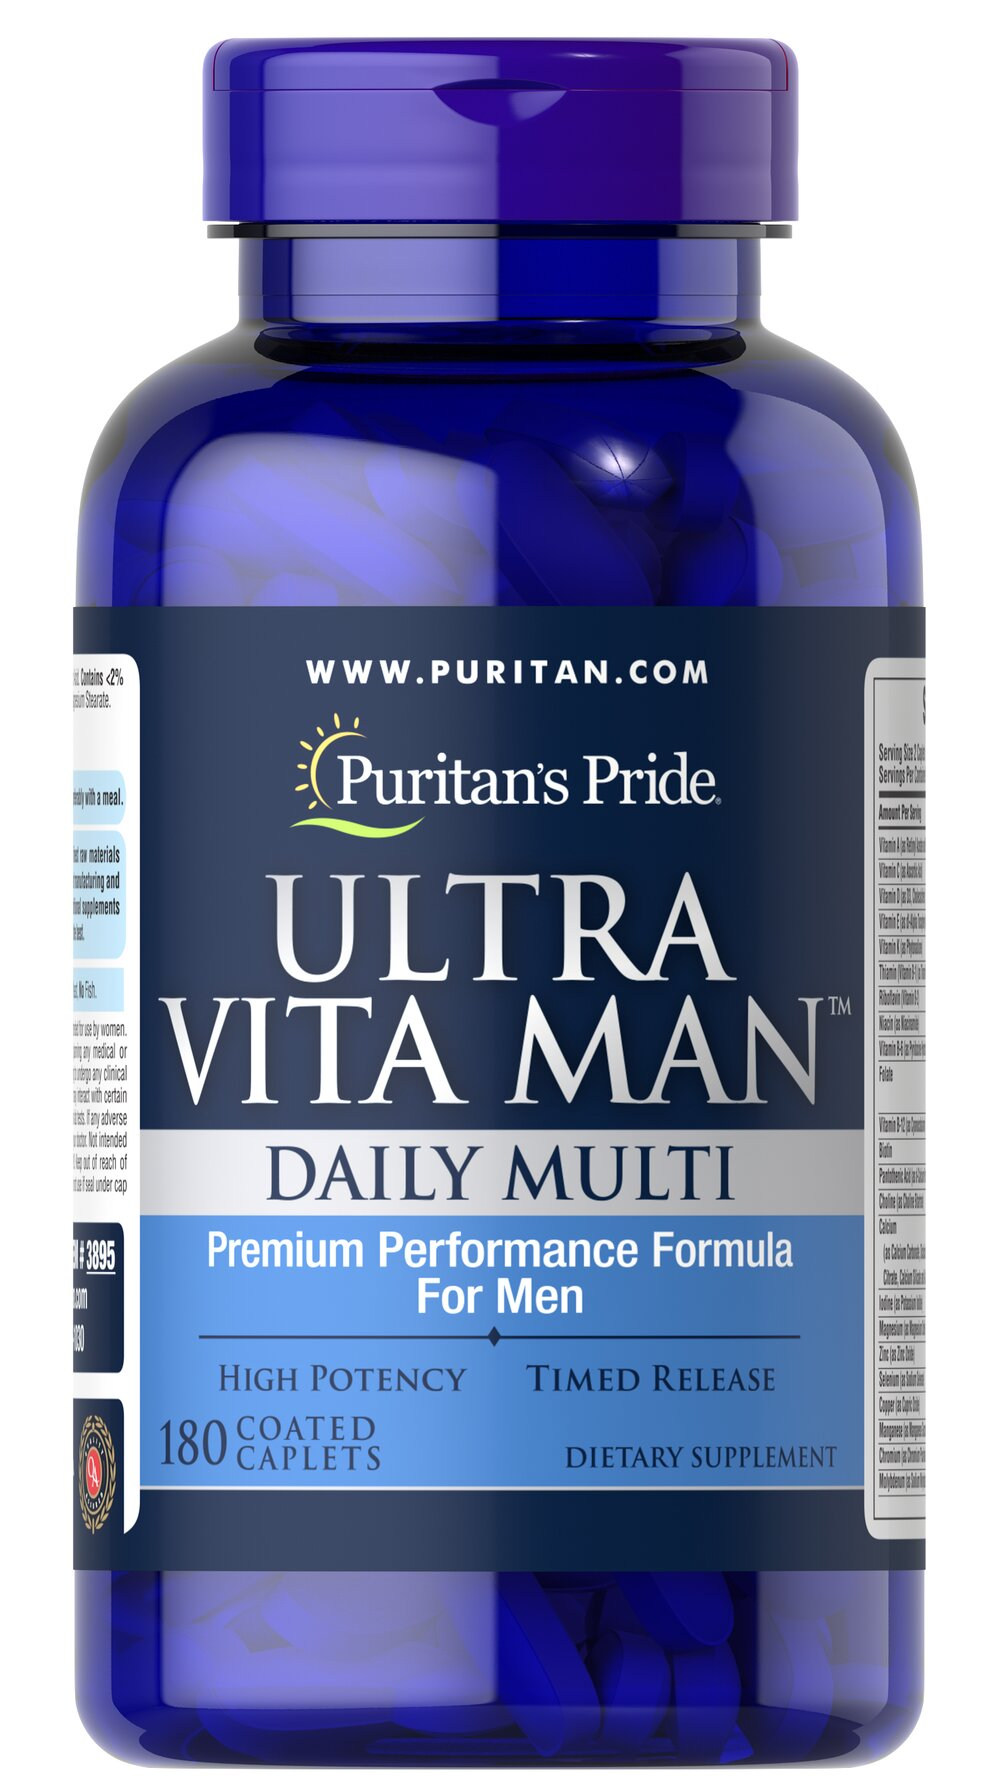 Coupons for puritan pride vitamins